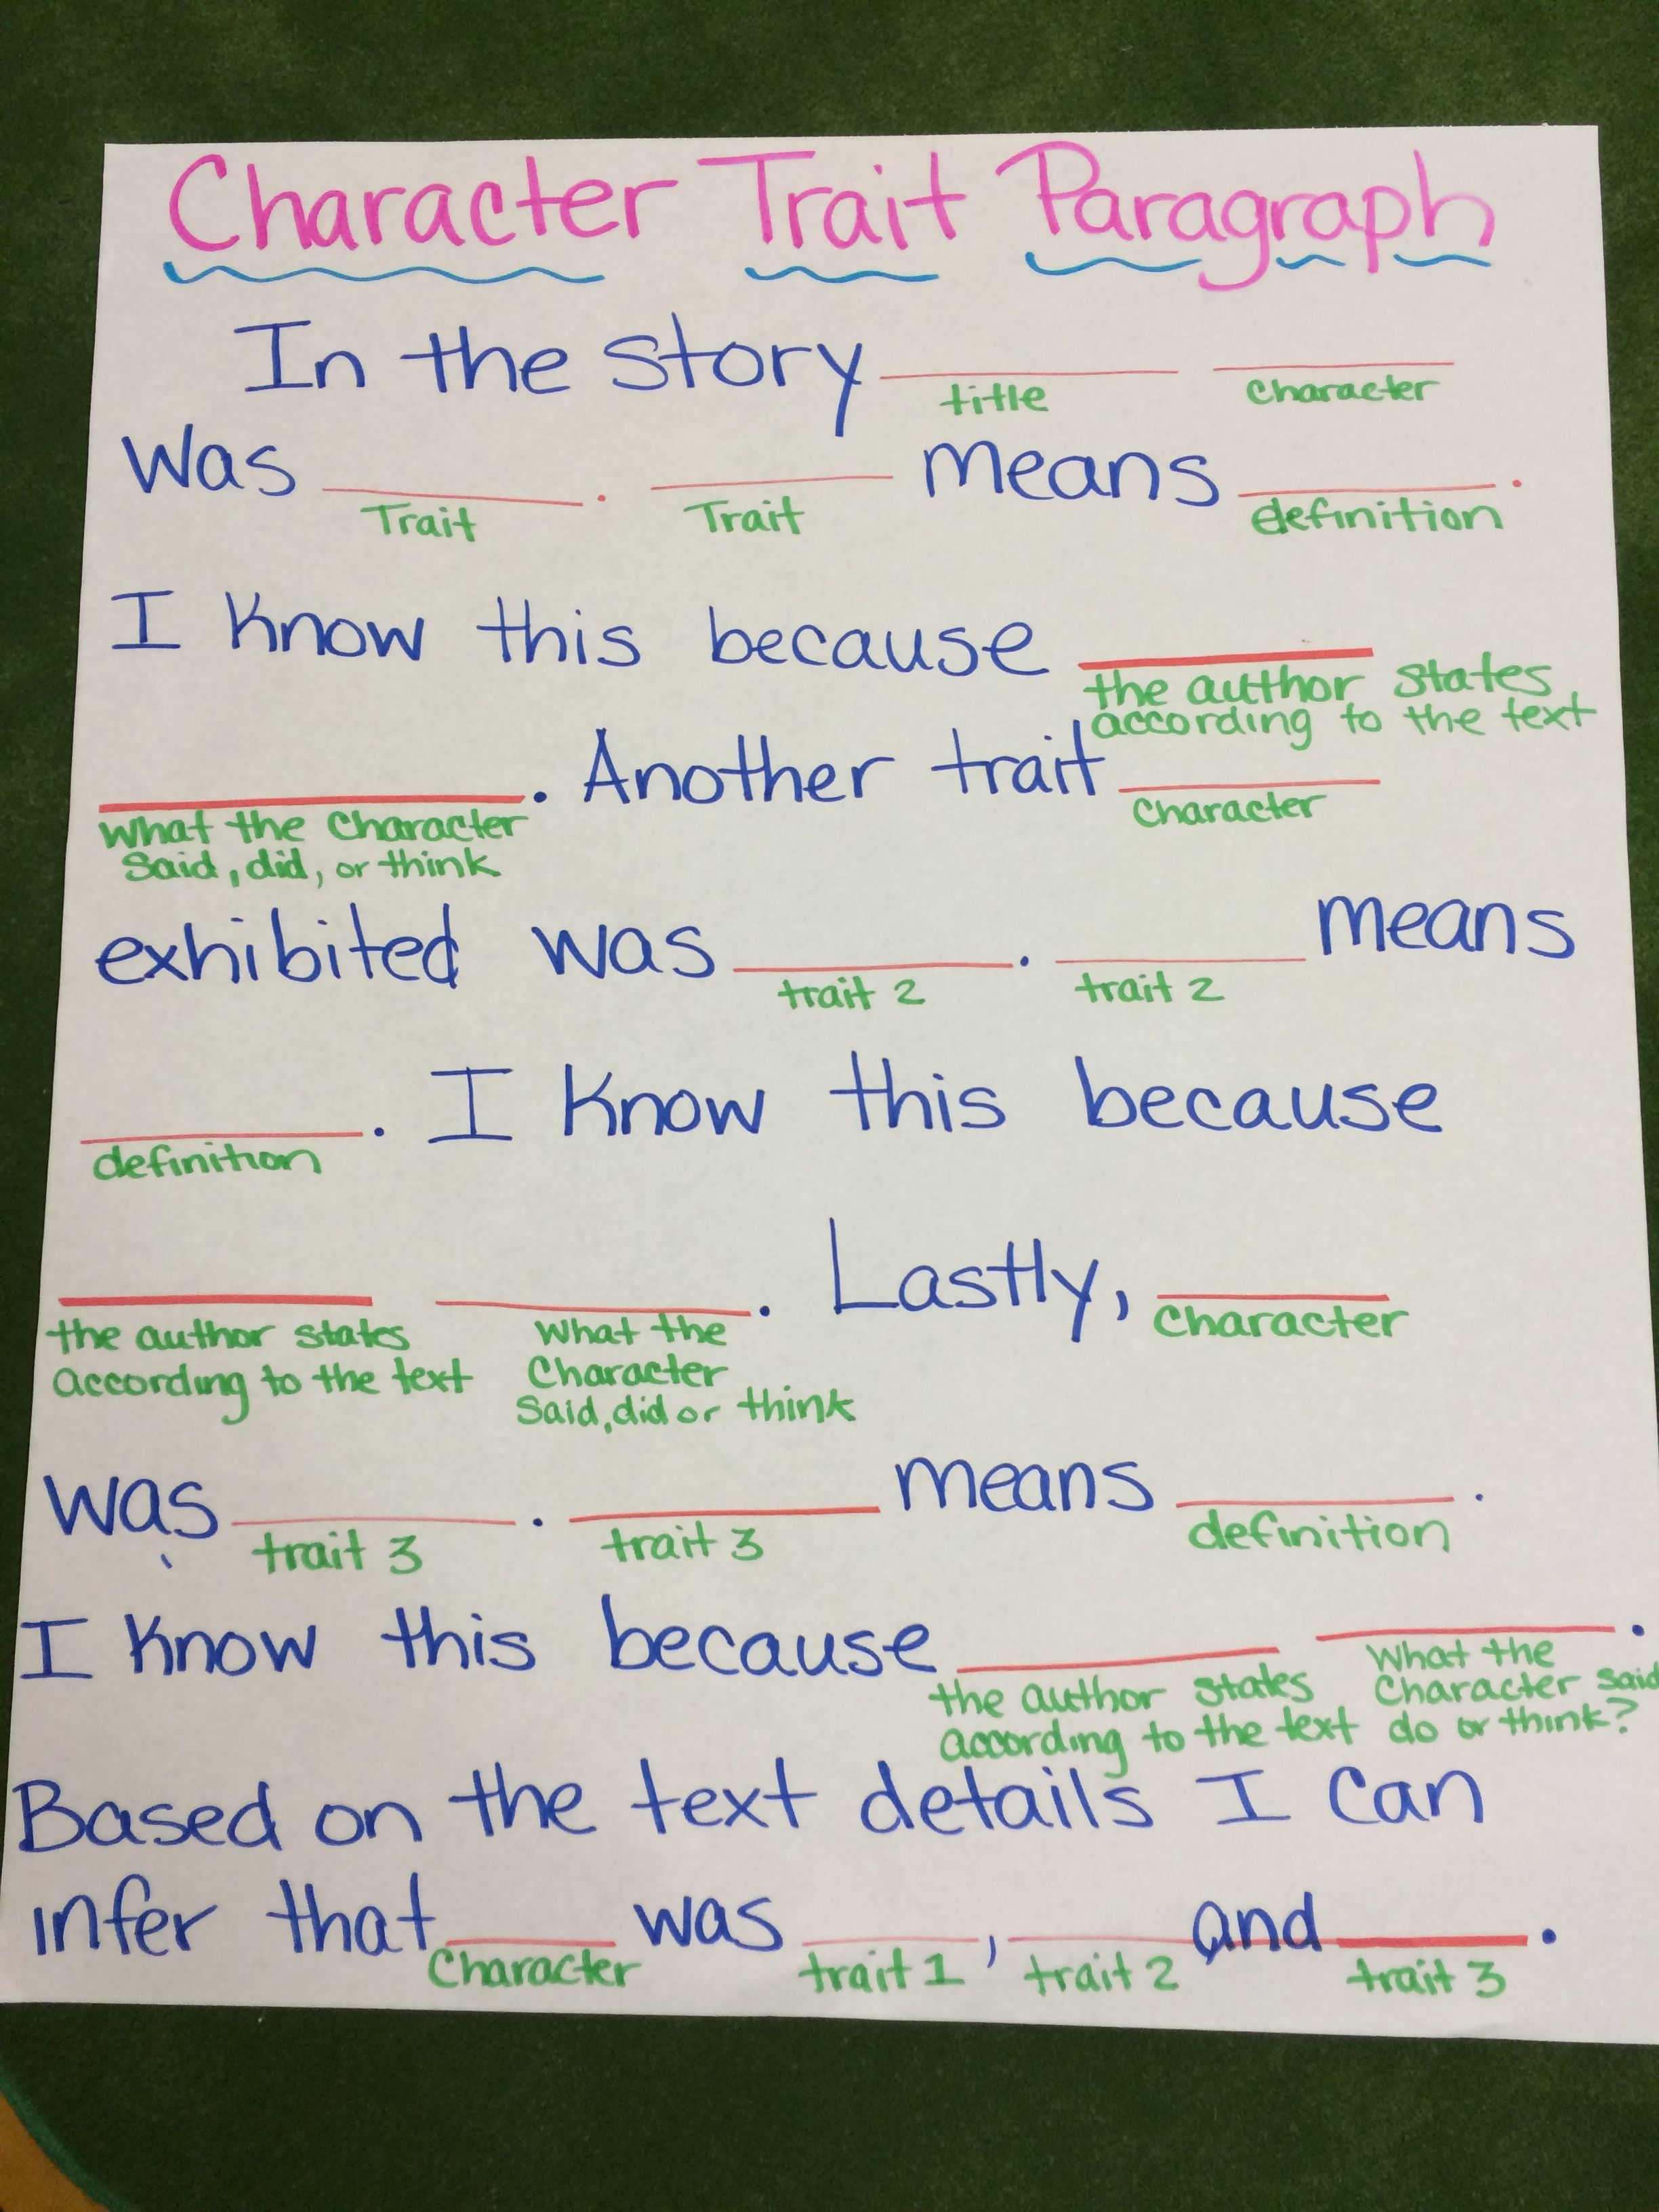 4th Grade Paragraph Writing Worksheets Printable Worksheets Are A Precious School Room Tool They No In 2021 Character Trait Sentence Frames Character Trait Lessons [ 3264 x 2448 Pixel ]